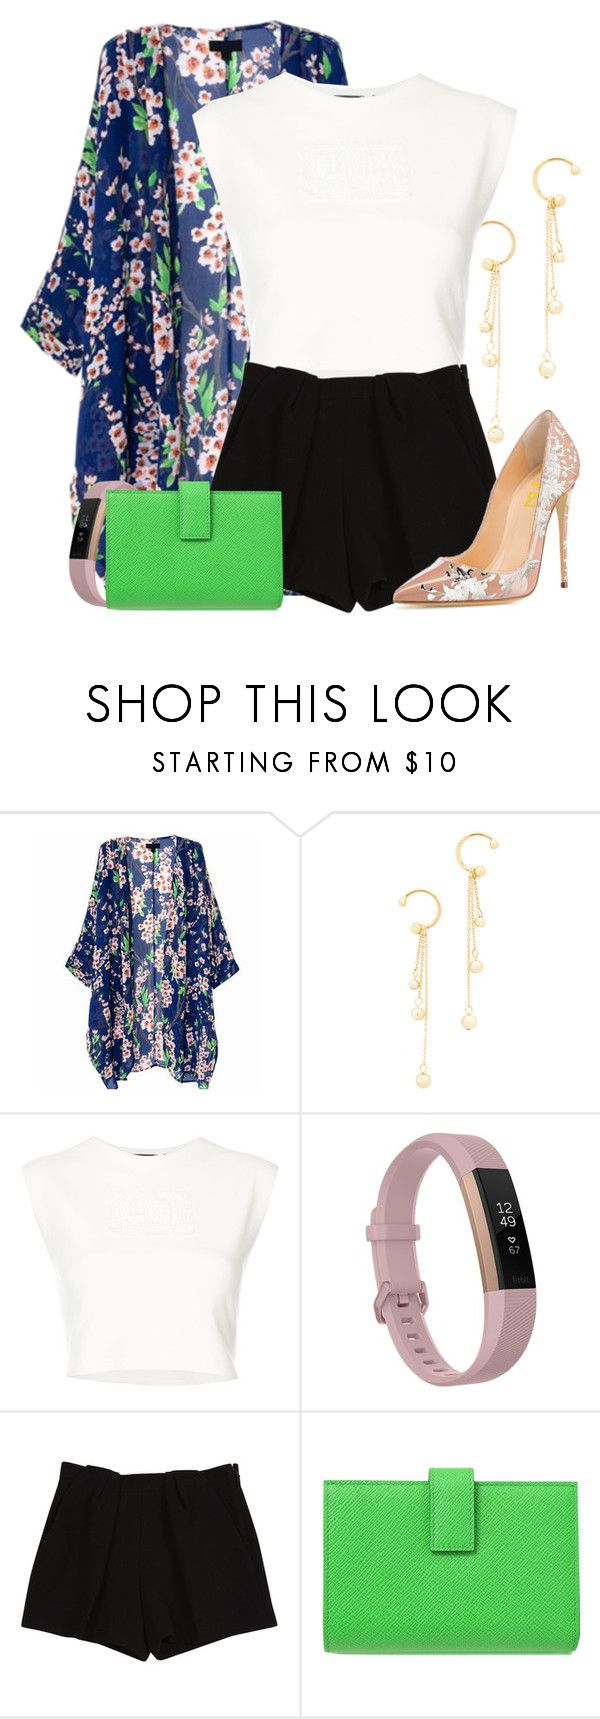 """""""Date Night In A #Heatwave"""" by my-style-xo ❤ liked on Polyvore featuring Rebecca Minkoff, Puma, Fitbit, Chloé, Smythson, Summer, contest, contestentry, heatwave and summerdatenight"""